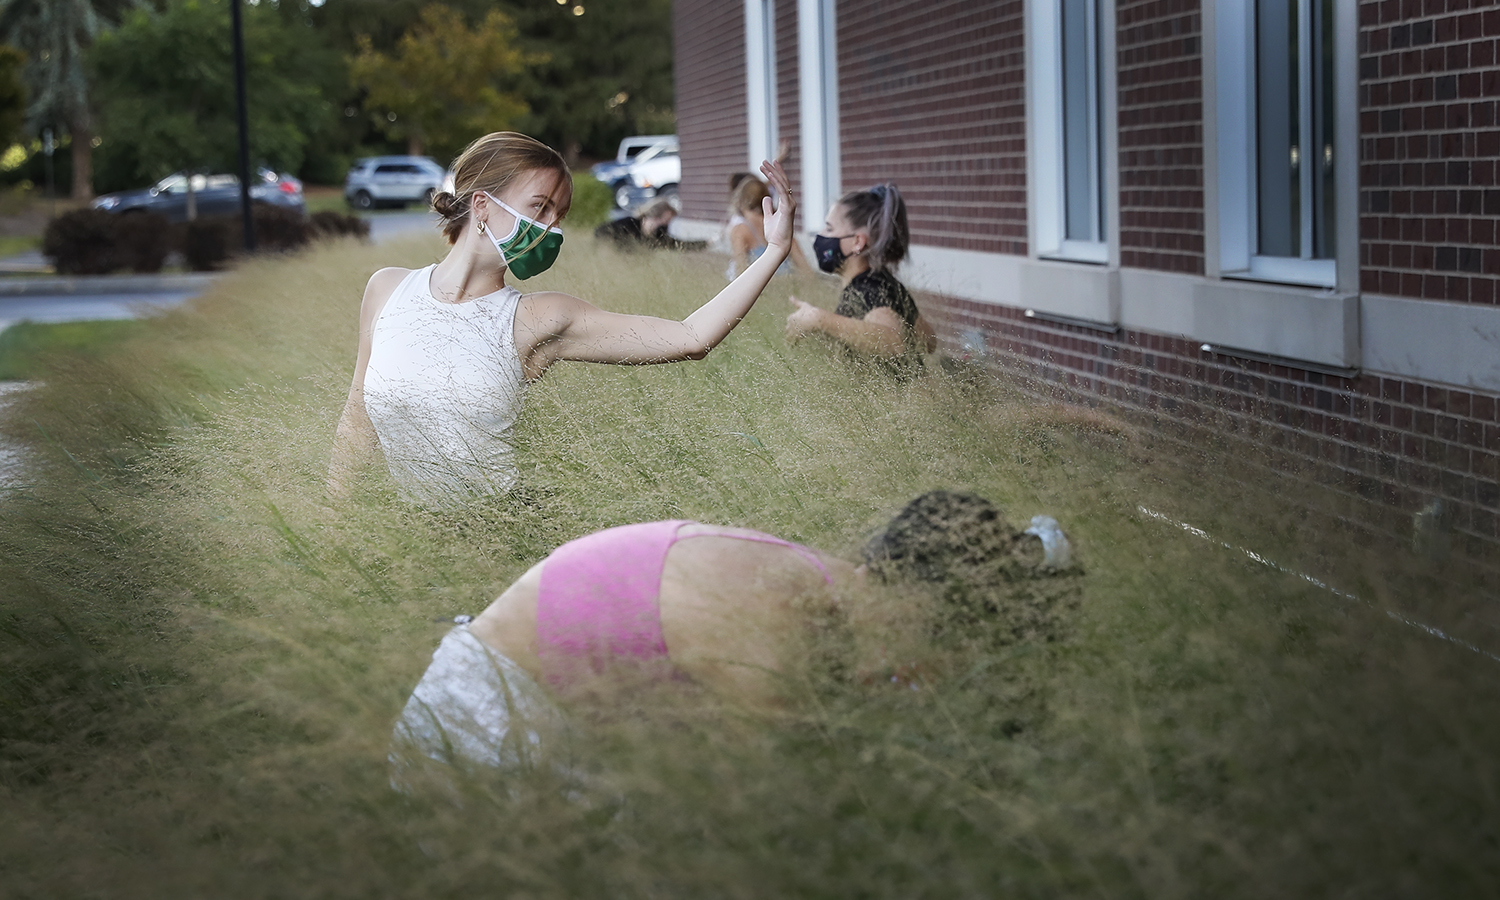 The Intermediate Modern Technique class taught by Associate Professor of Dance, Michelle Ikle, performed an Environmental Dance Map in front of the Gearan Center. The tall grasses provided a perfect landscape for a study in appearing and disappearing; relating self to self, self to other and self to environment.